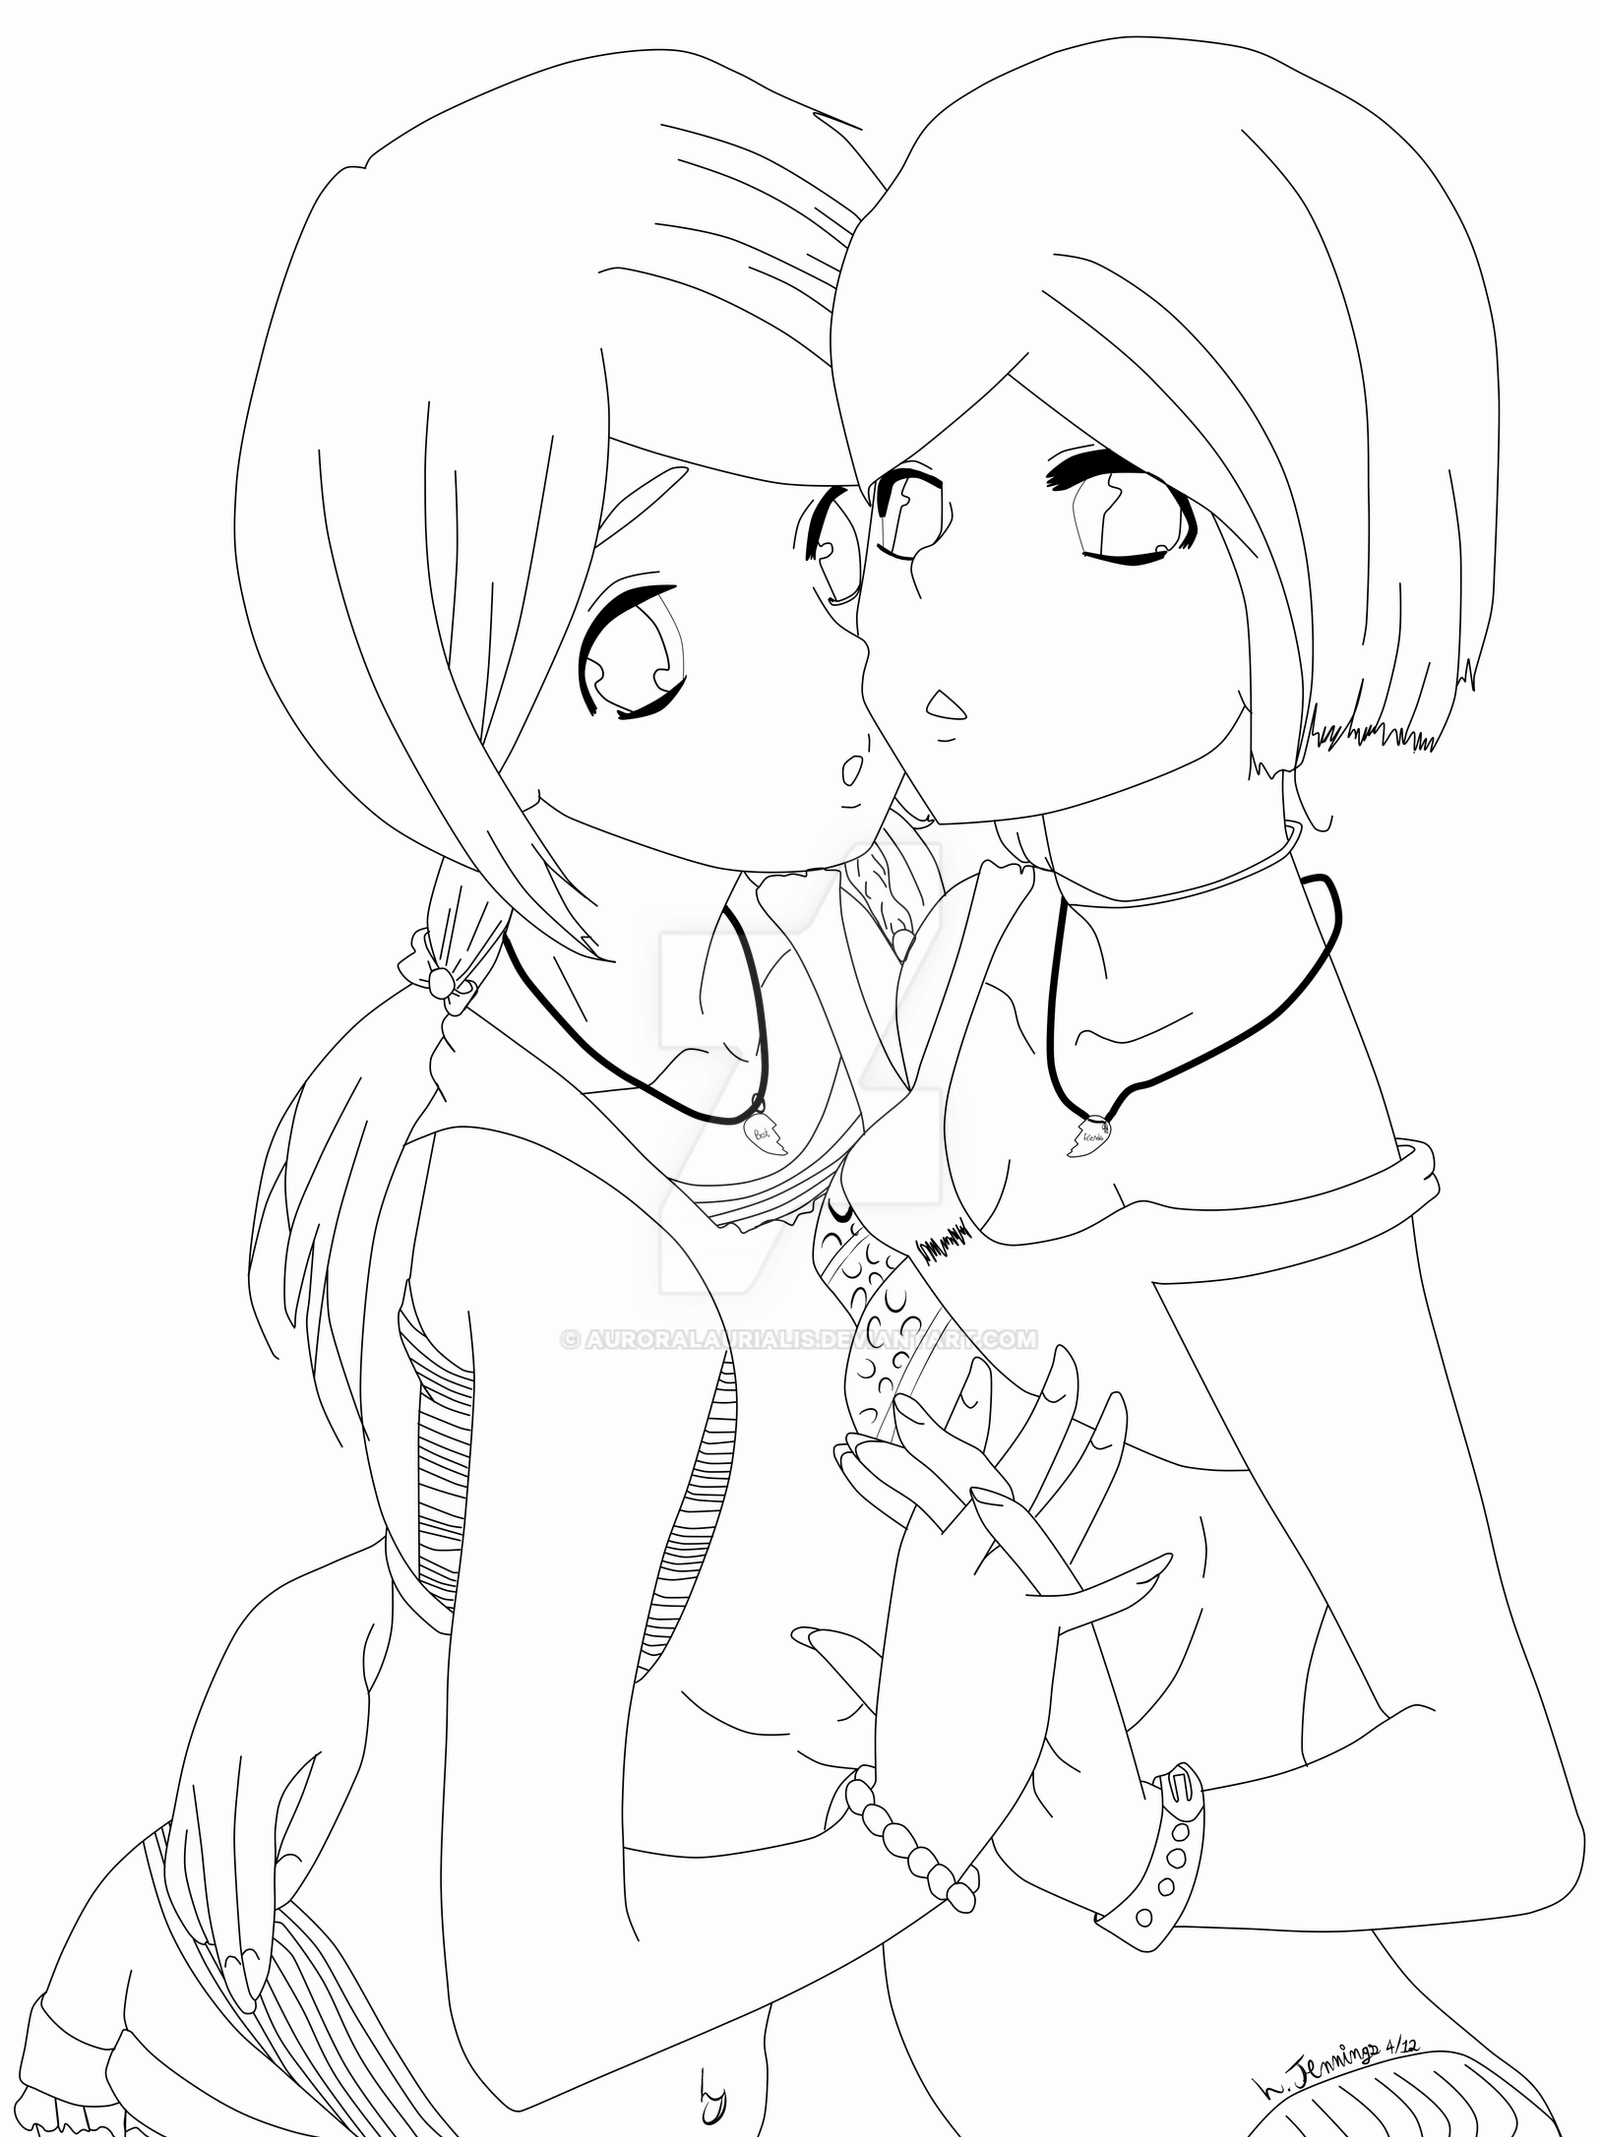 anime bff coloring pages nelle and laura bff lineart by auroralaurialis on deviantart coloring bff anime pages